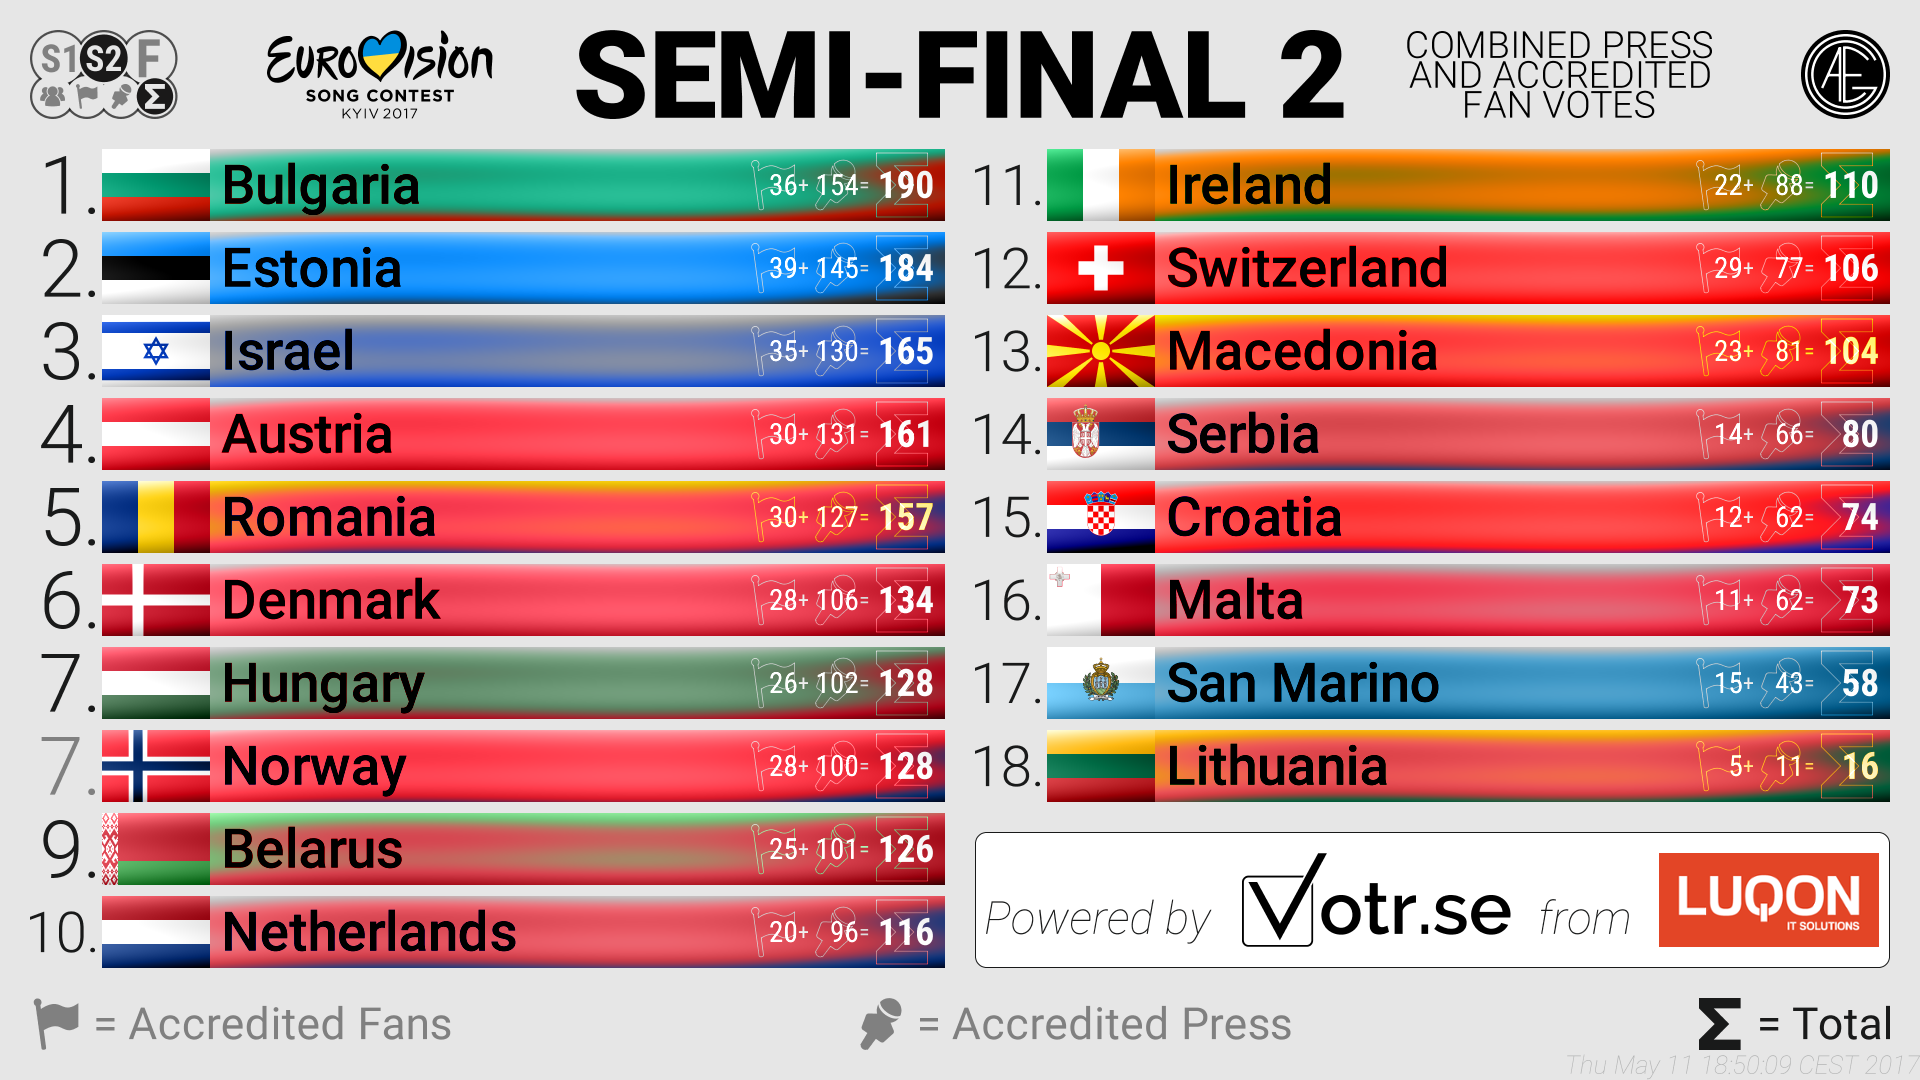 Eurovision 2017: Press Poll results before 2nd Semi Final